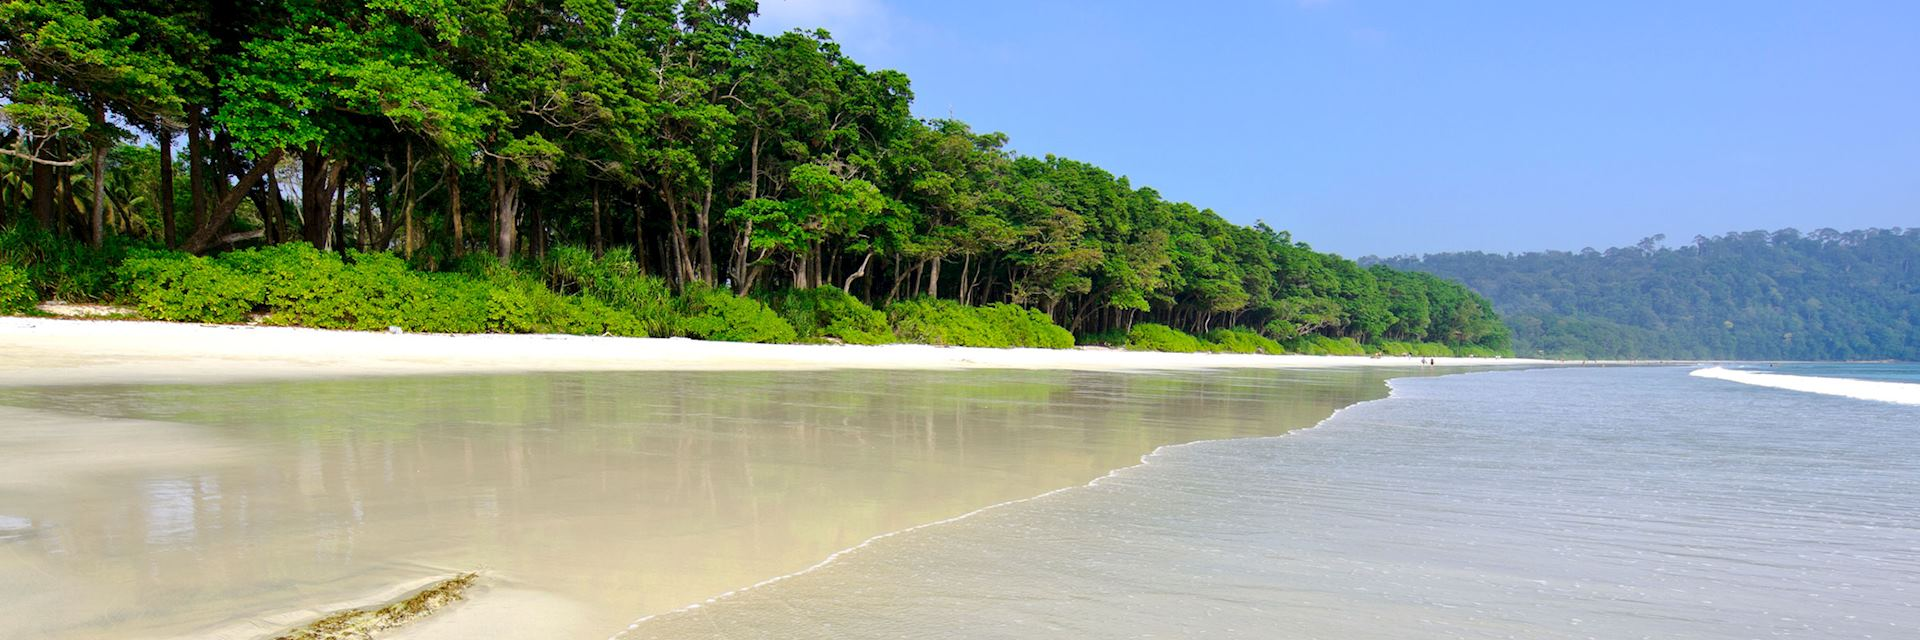 Havelock Island, Andaman Islands, India